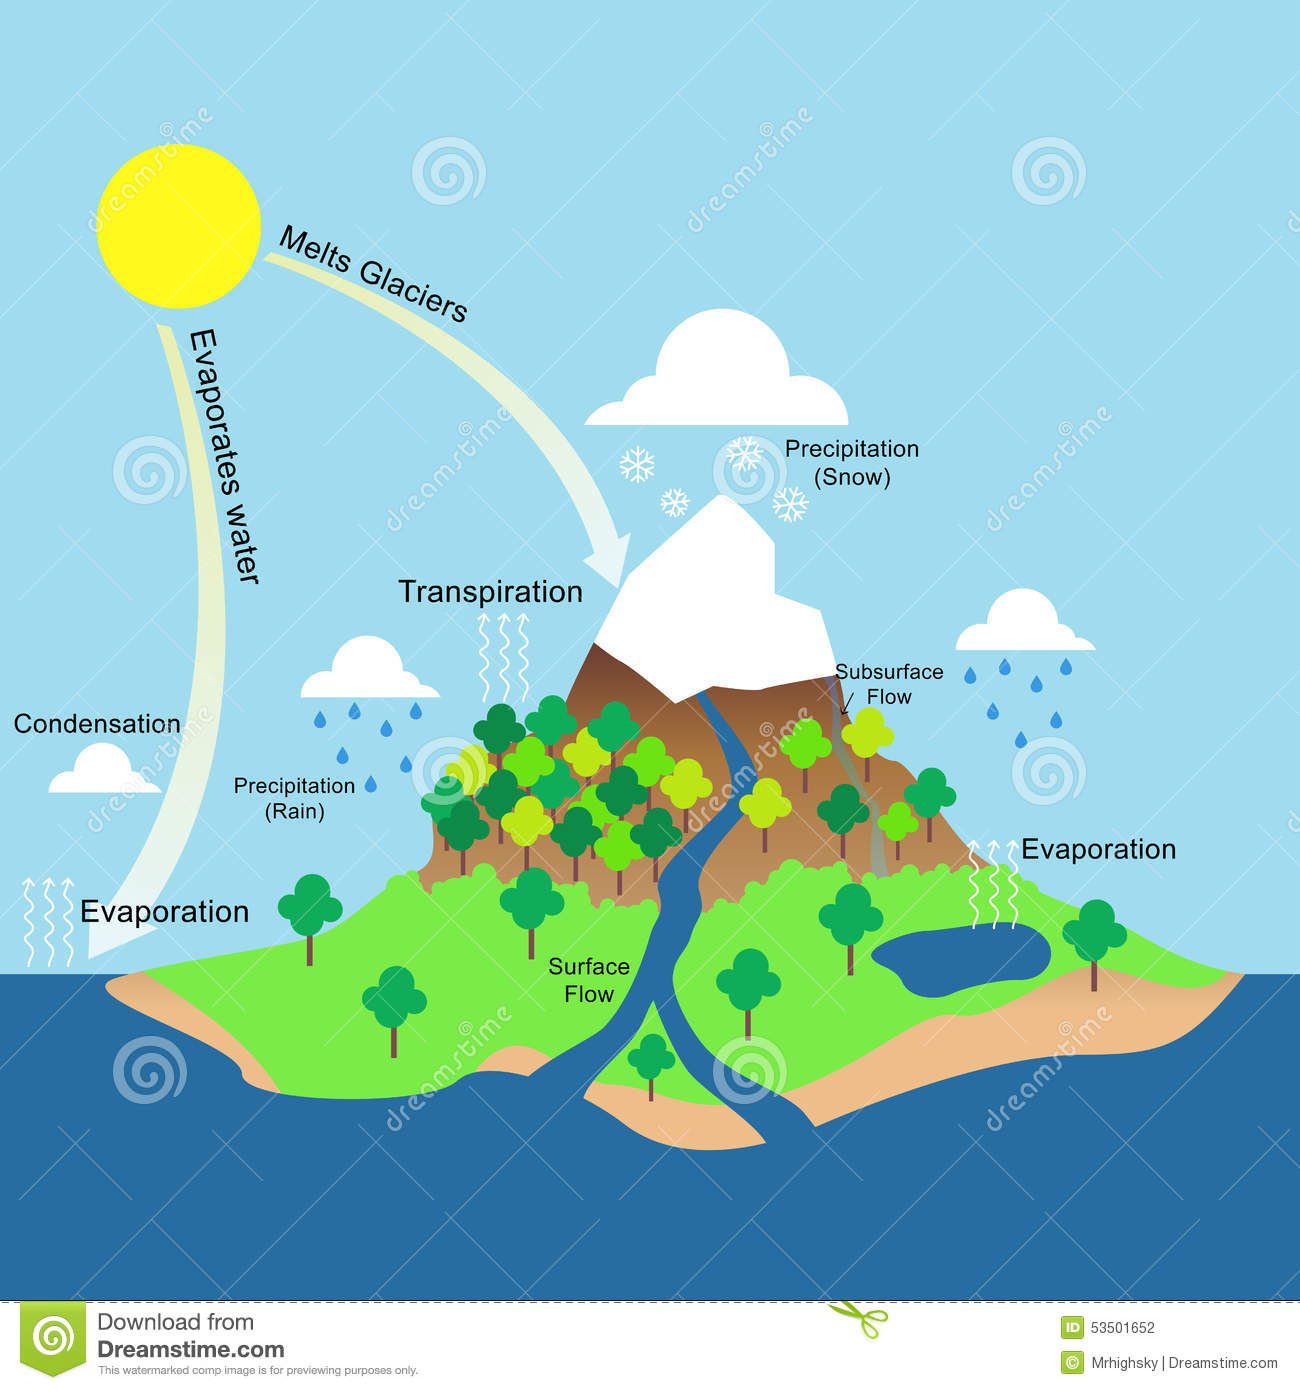 water cycle clip art - photo #31